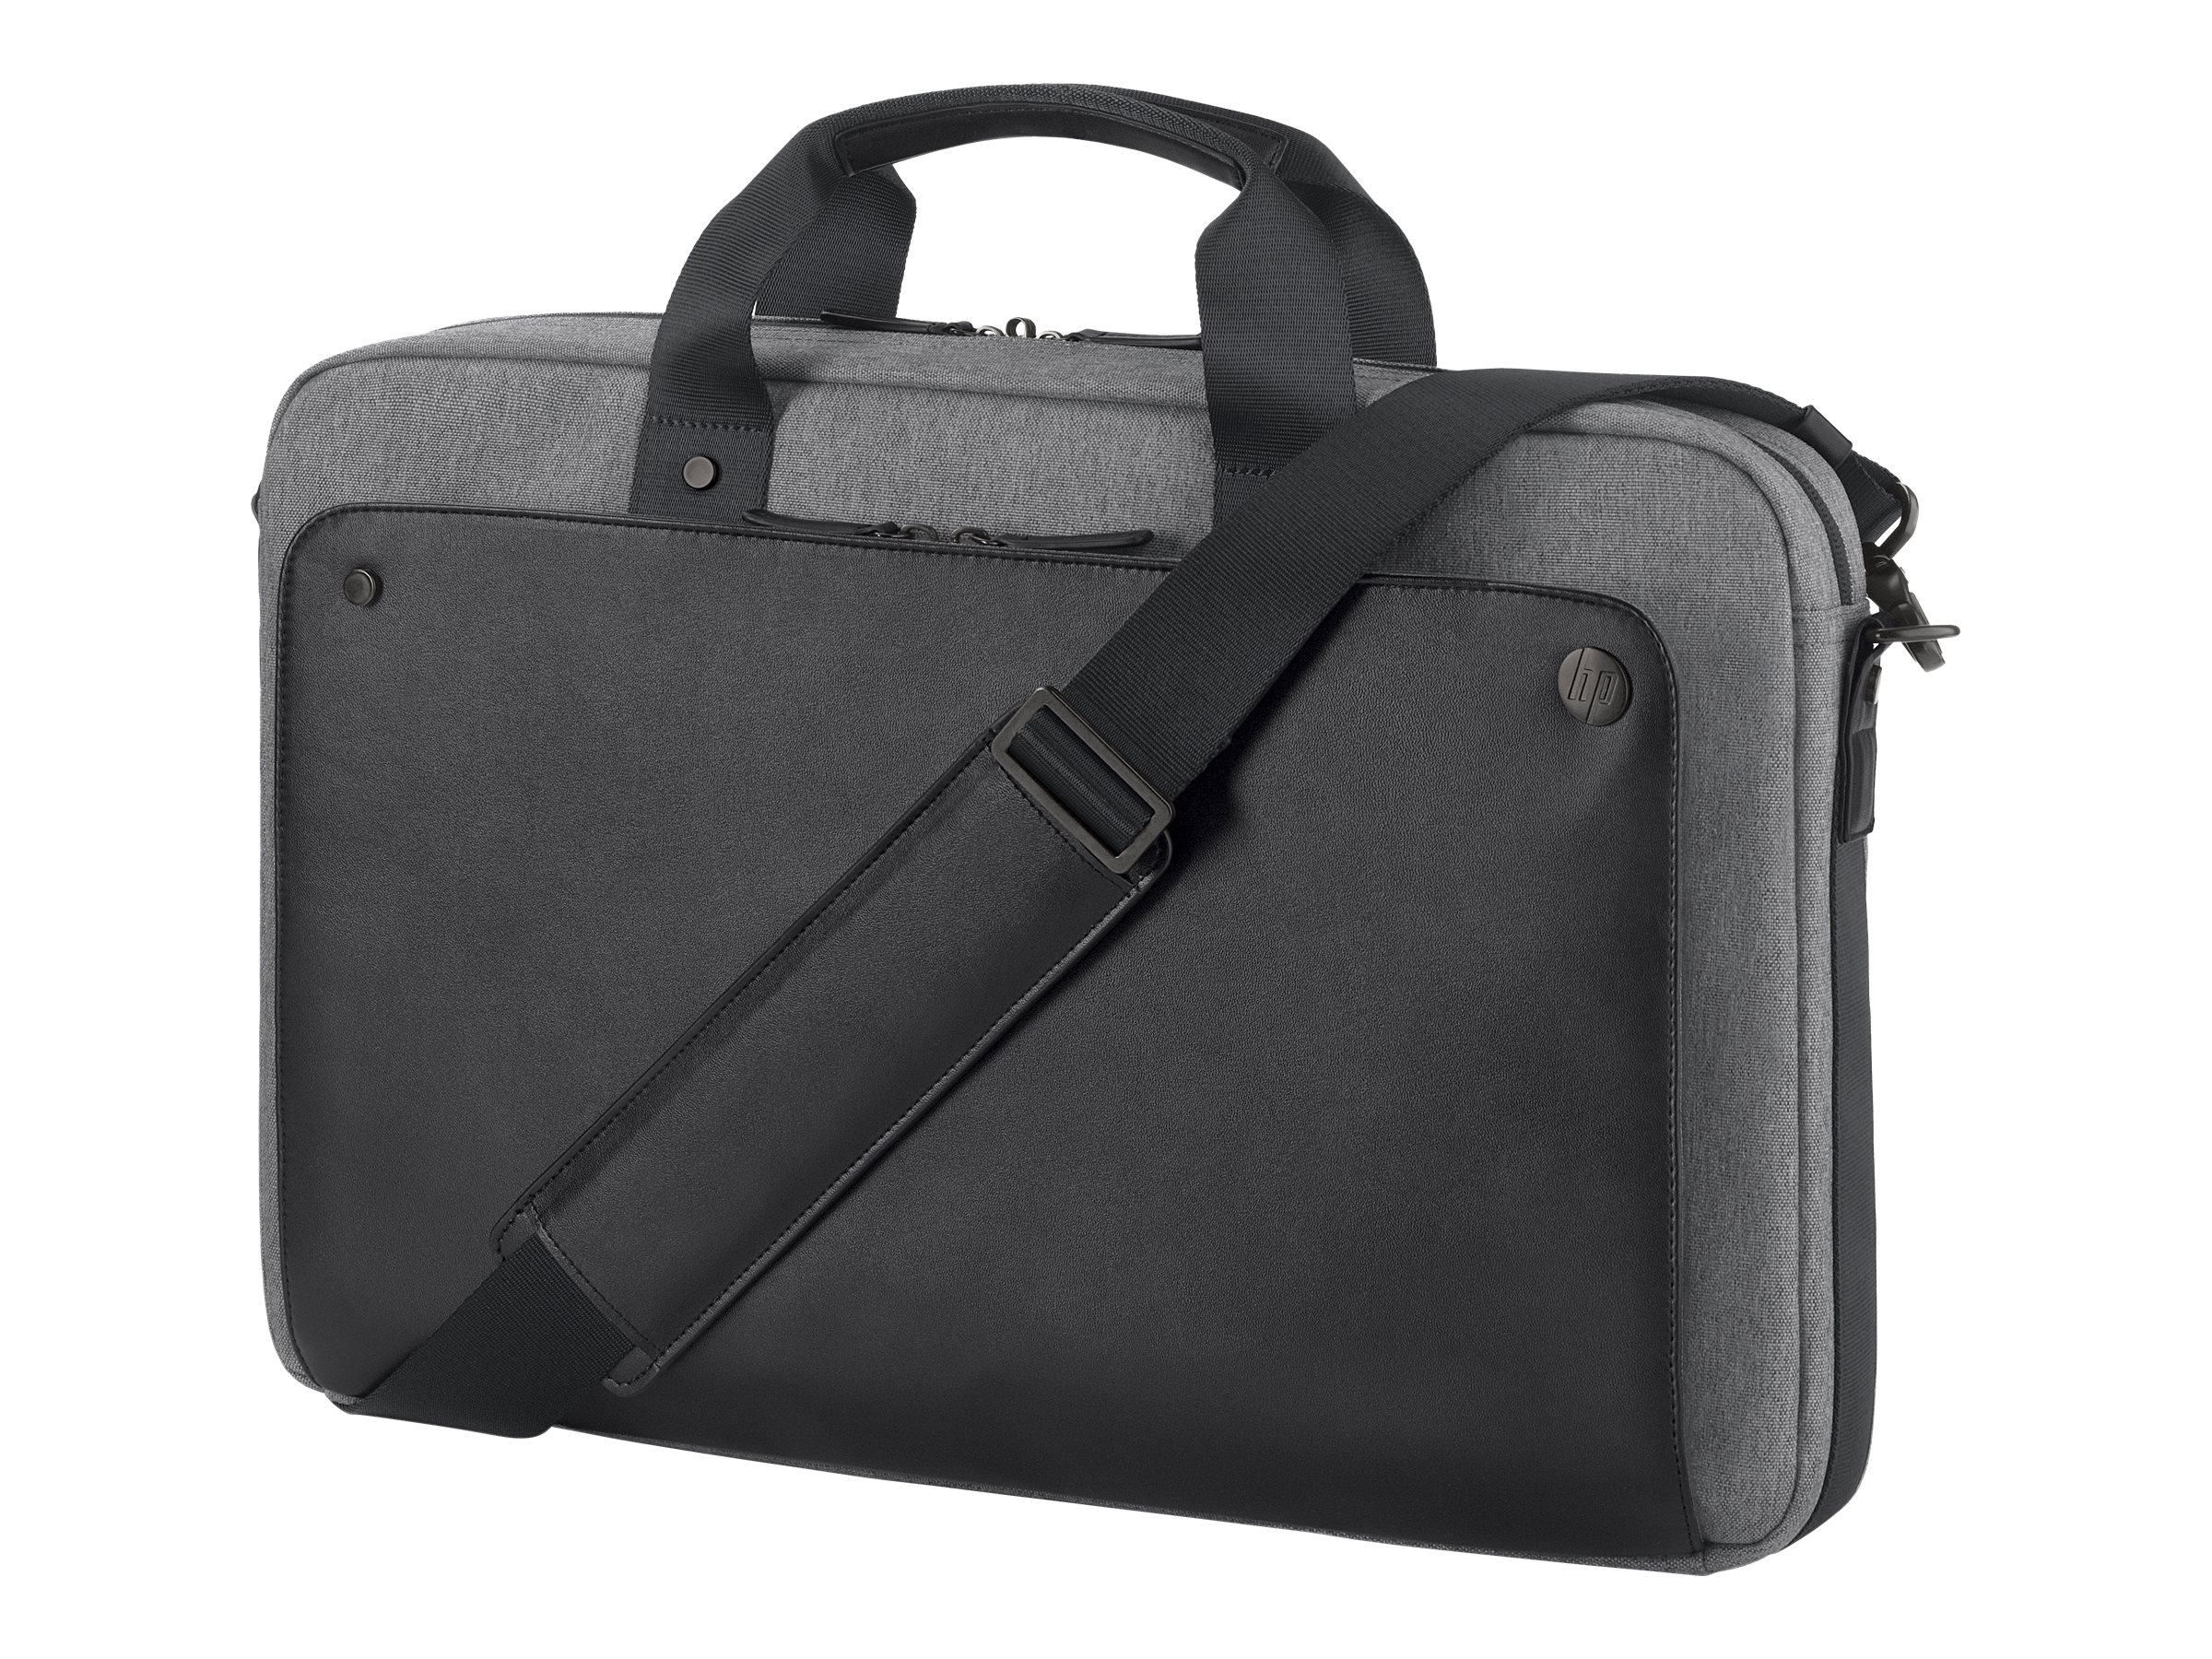 HP Executive Slim Top Load 15.6, Black, P6N20AA, 31842121, Carrying Cases - Notebook